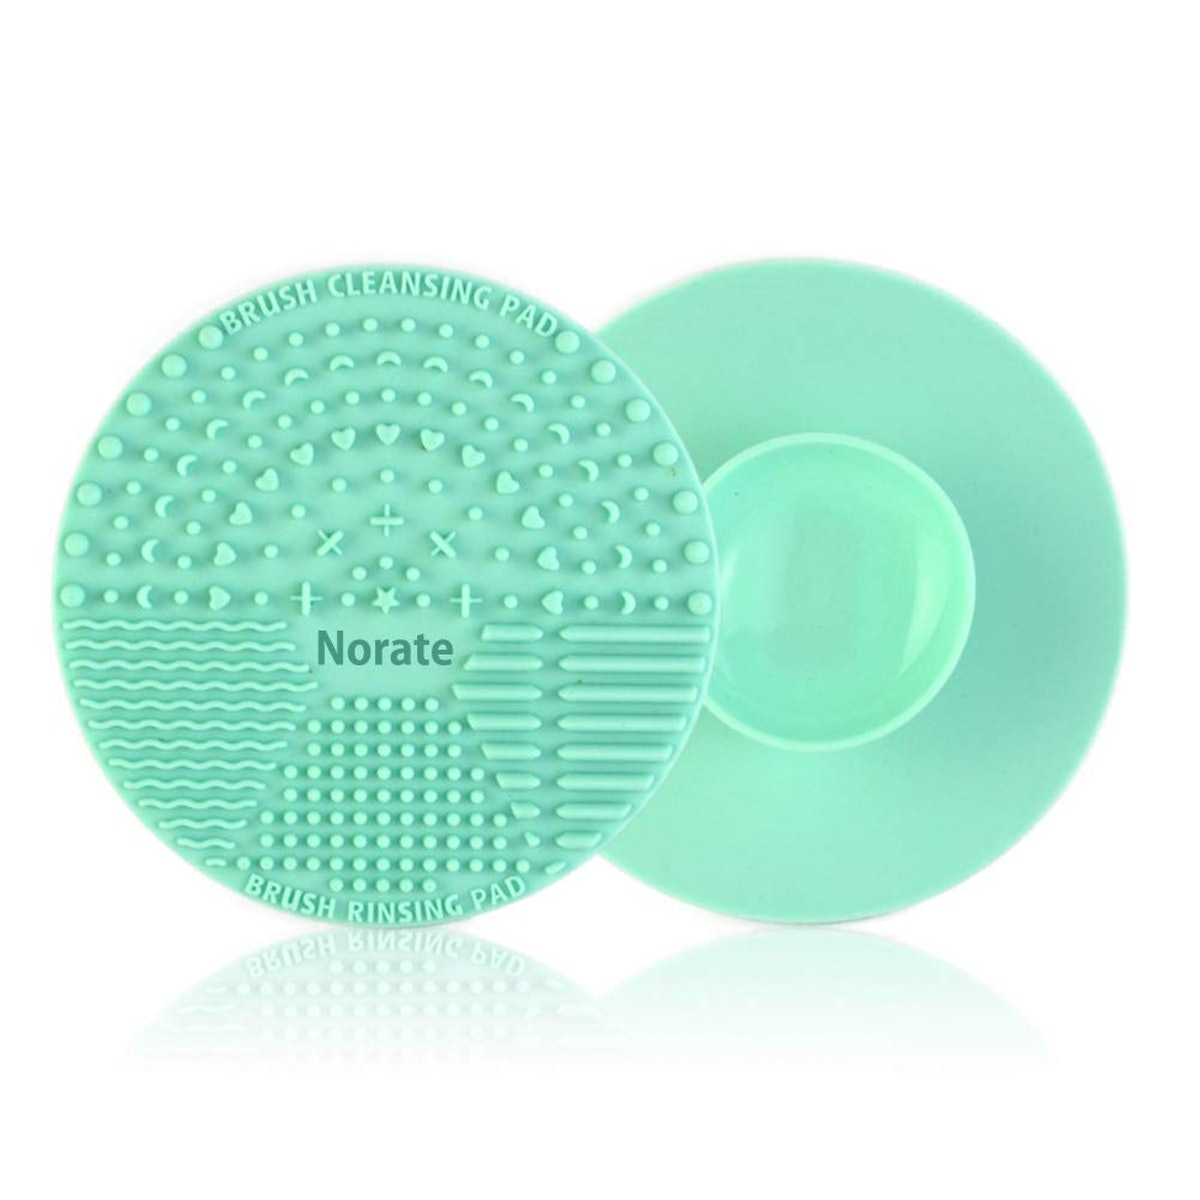 Norate Makeup Brush Cleaning Mat